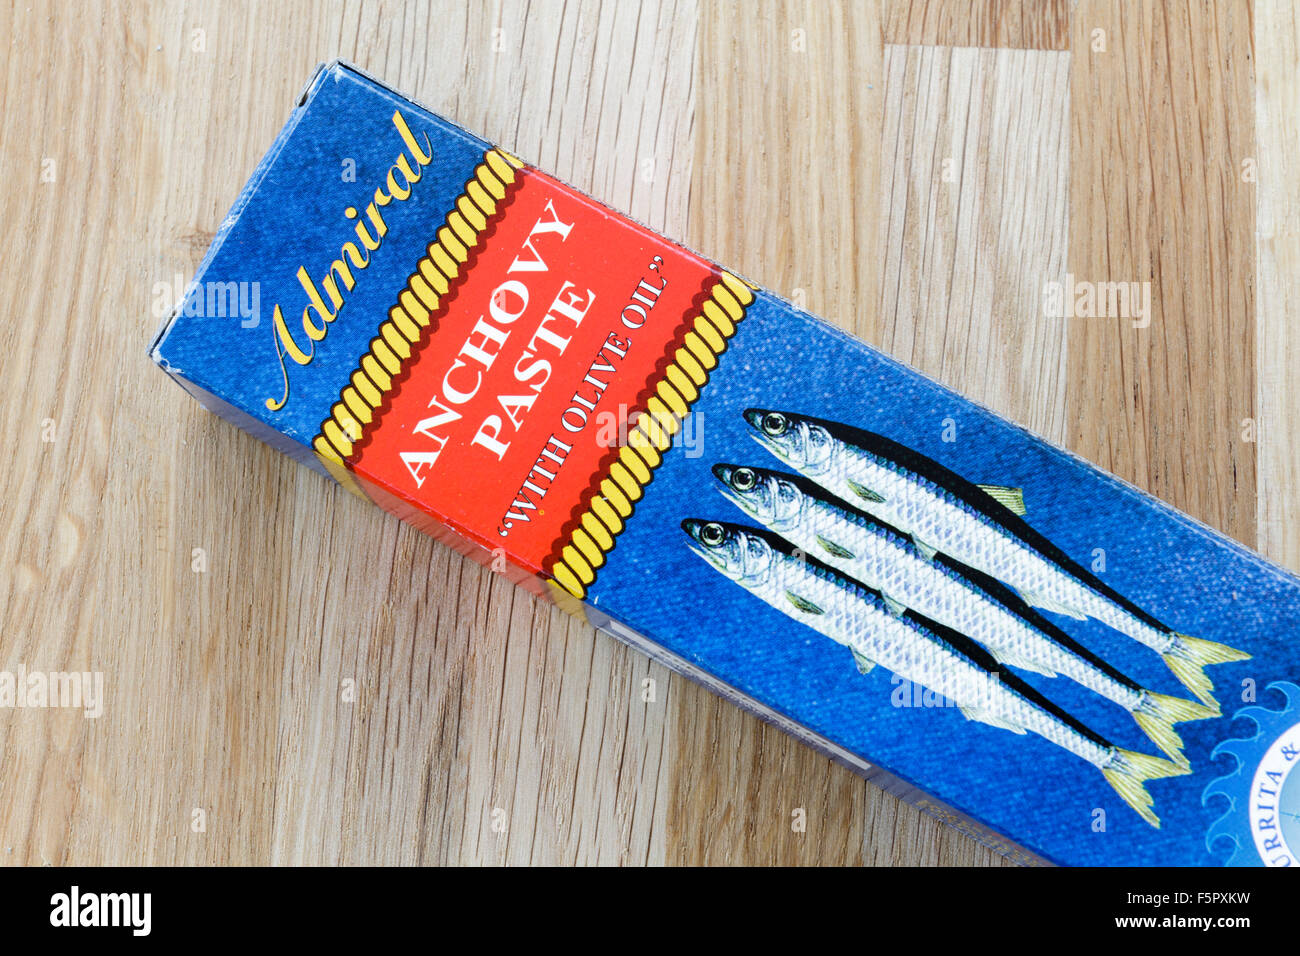 Box containing tube of anchovy paste - Stock Image